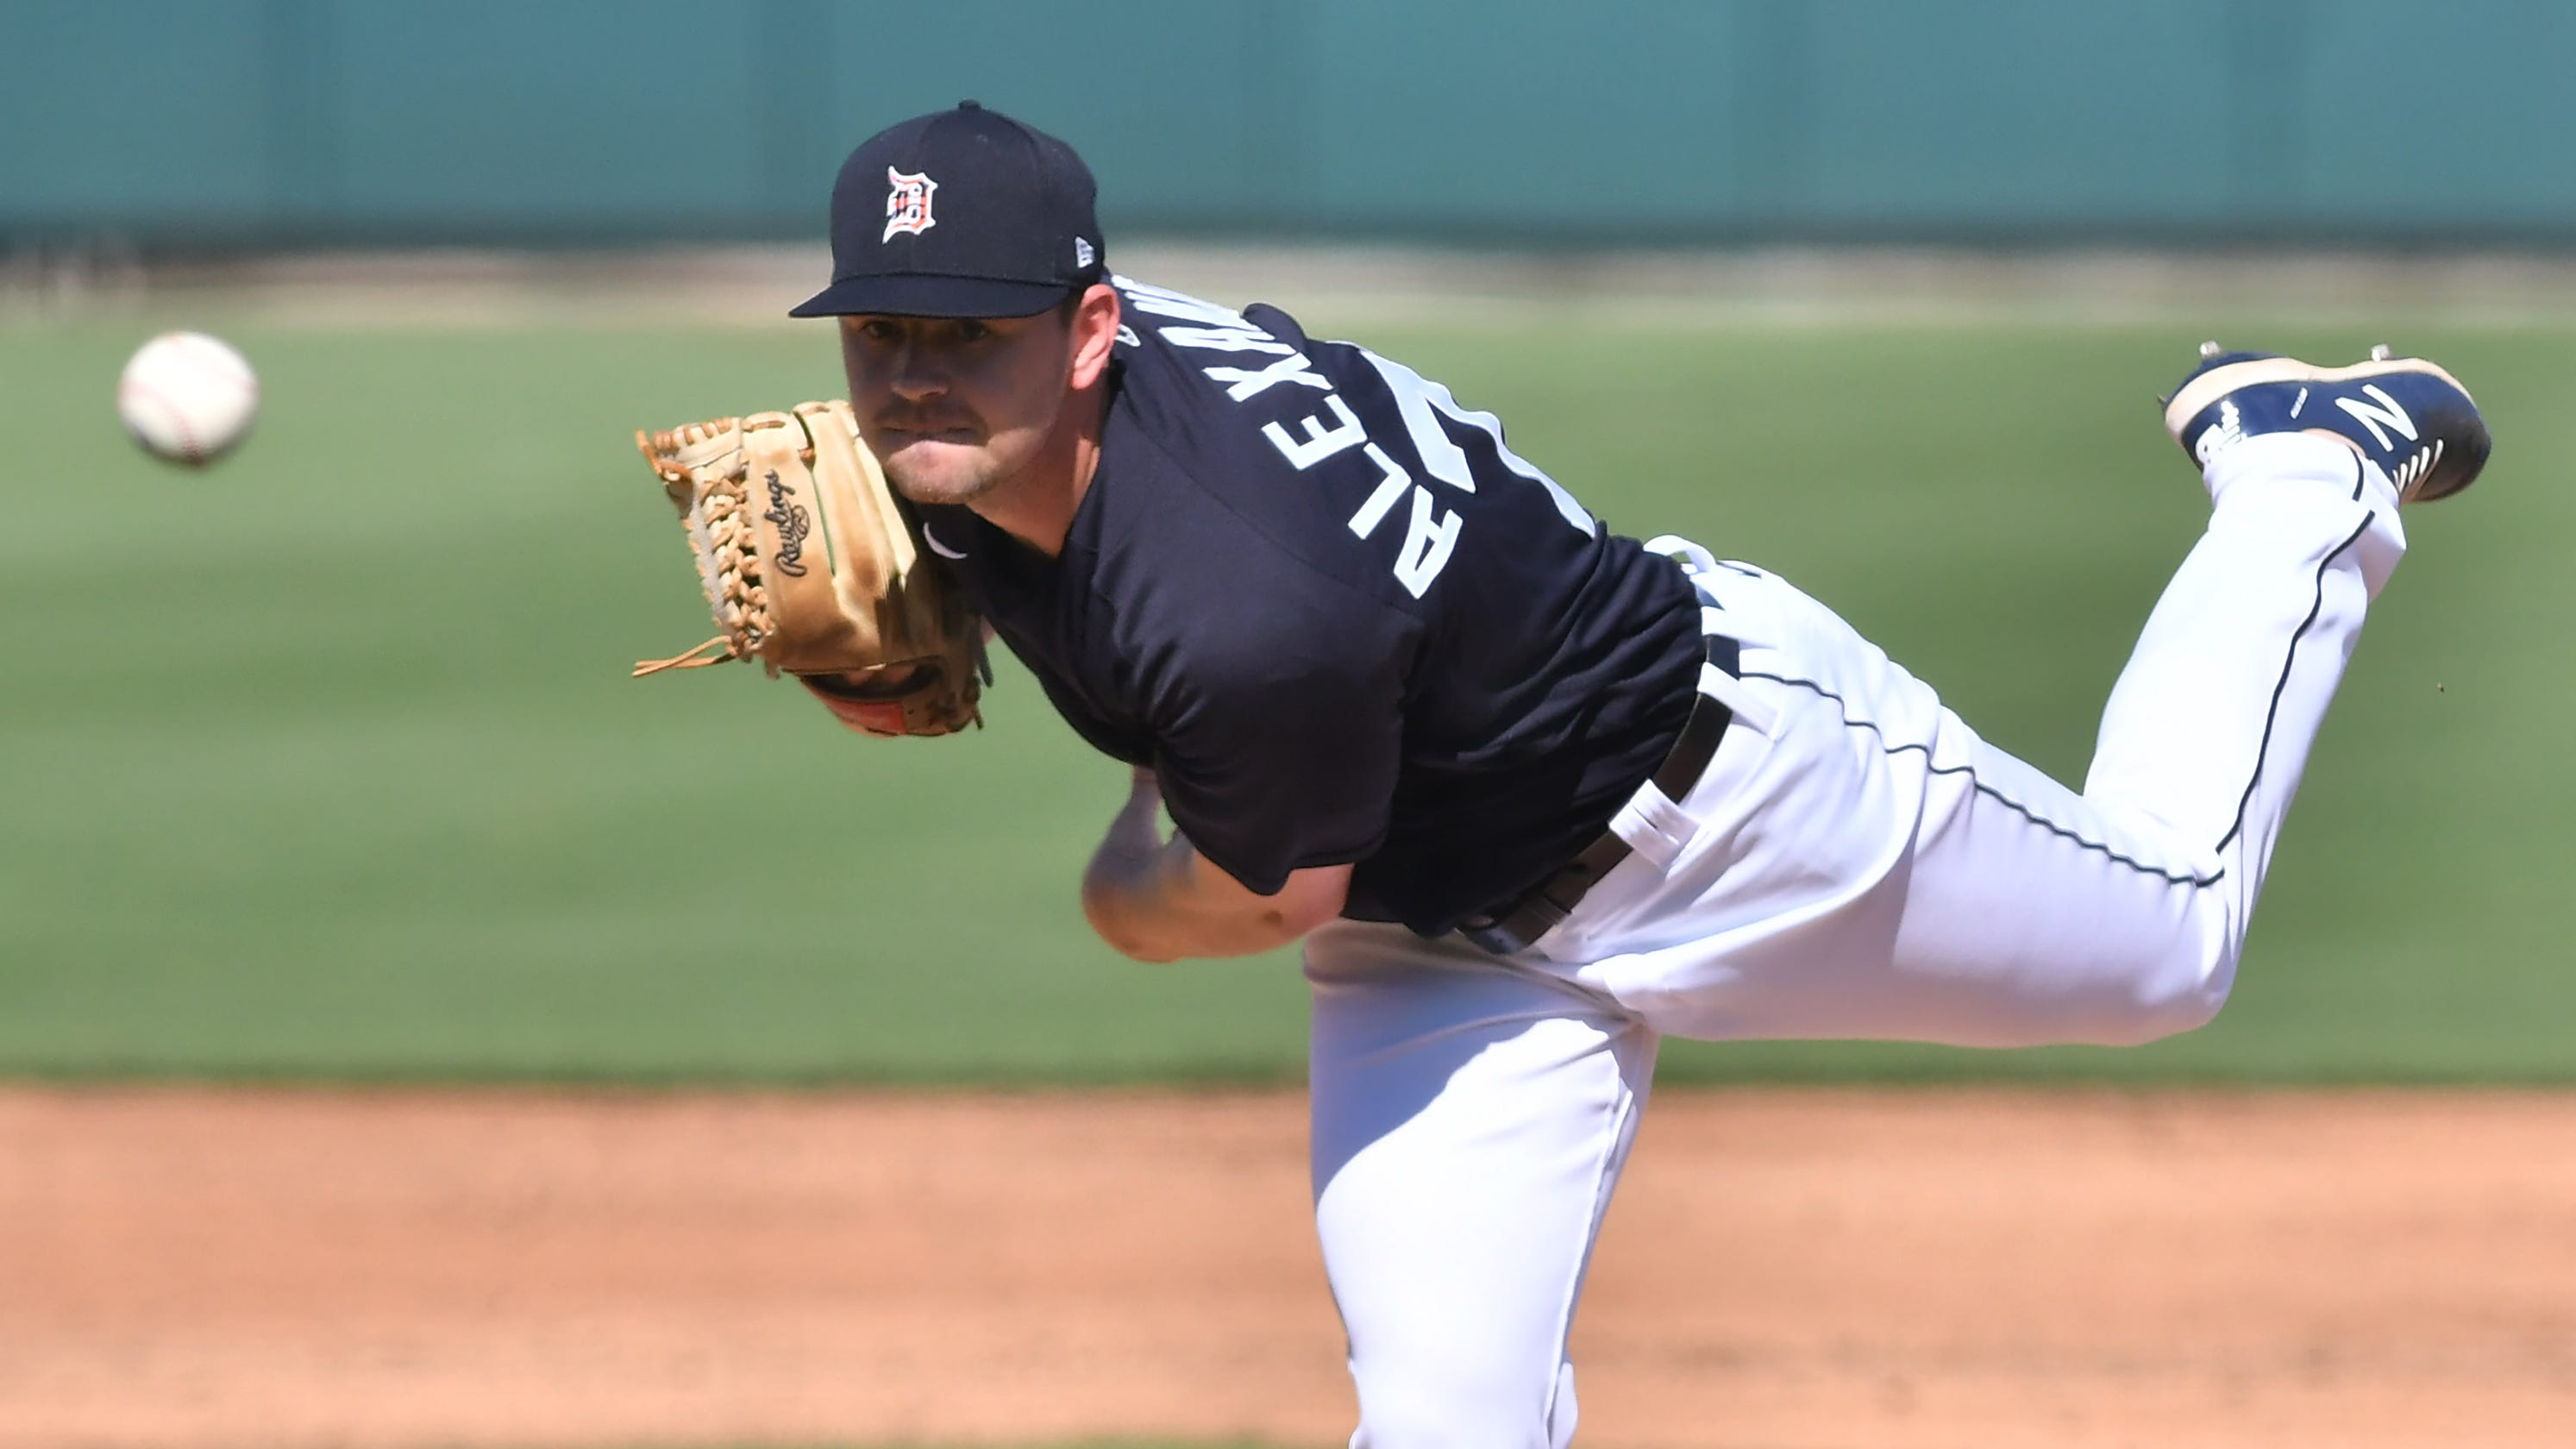 Tigers' Ron Gardenhire says Tyler Alexander will stay in bullpen for now